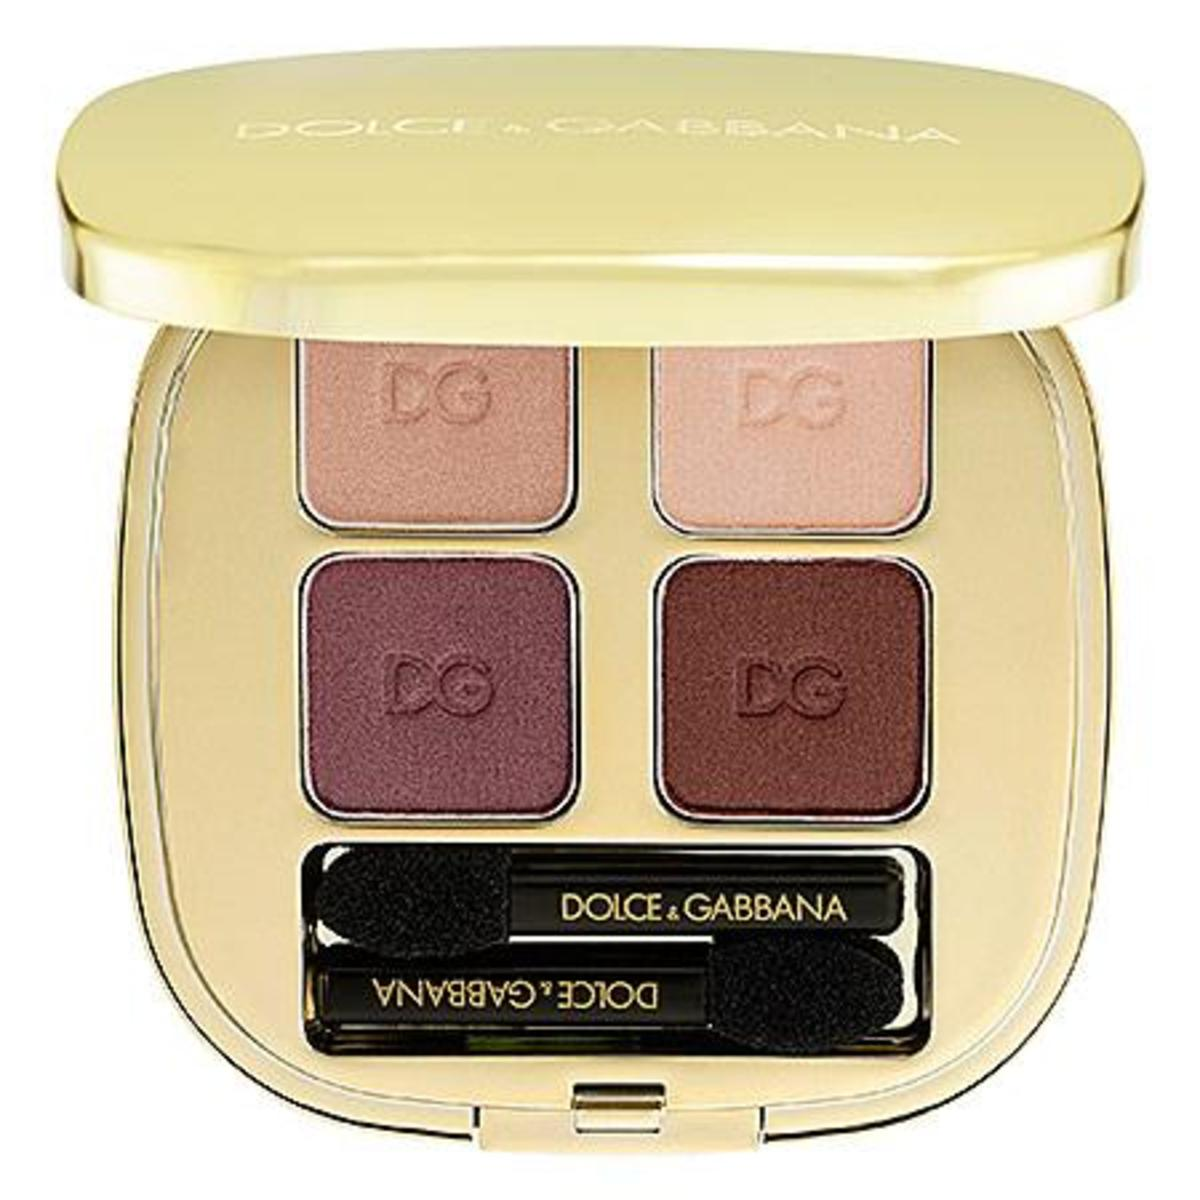 Dolce & Gabbana The Eyeshadow Smooth Eye Colour Quad in Contrasts 140